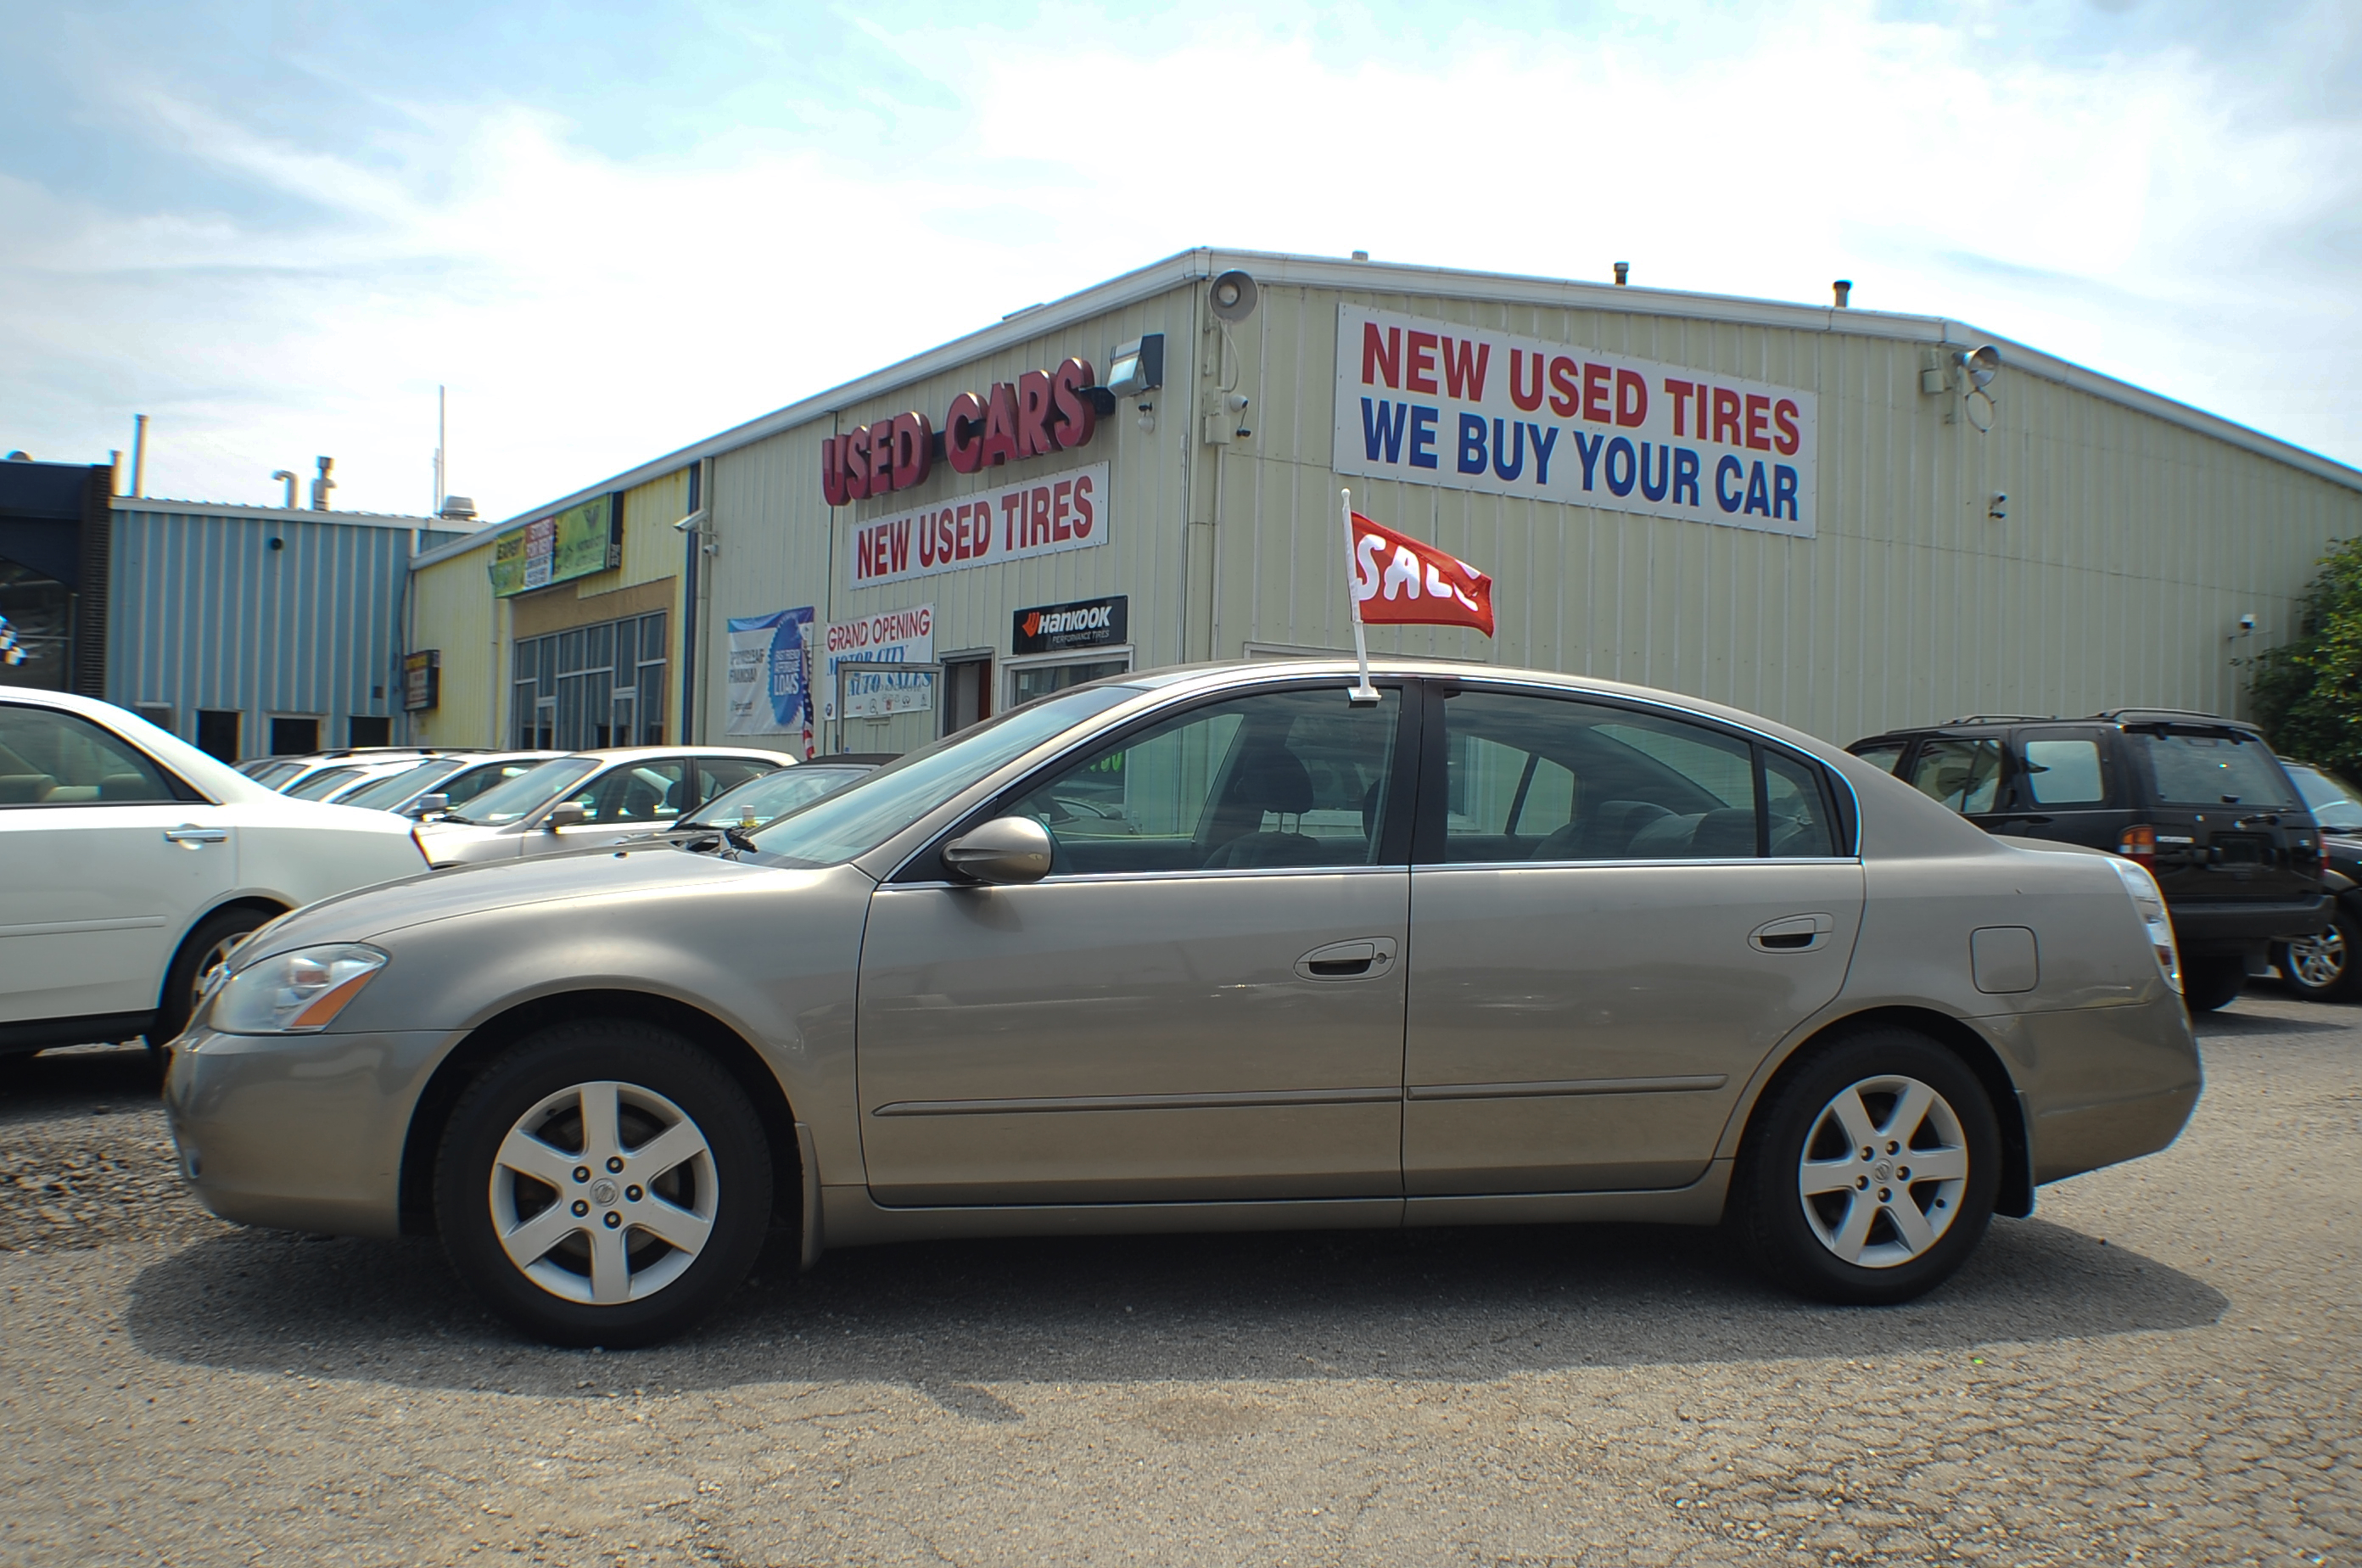 2004 Nissan Altima 2.5S Sand Sedan Used Car Sale Antioch Grayslake